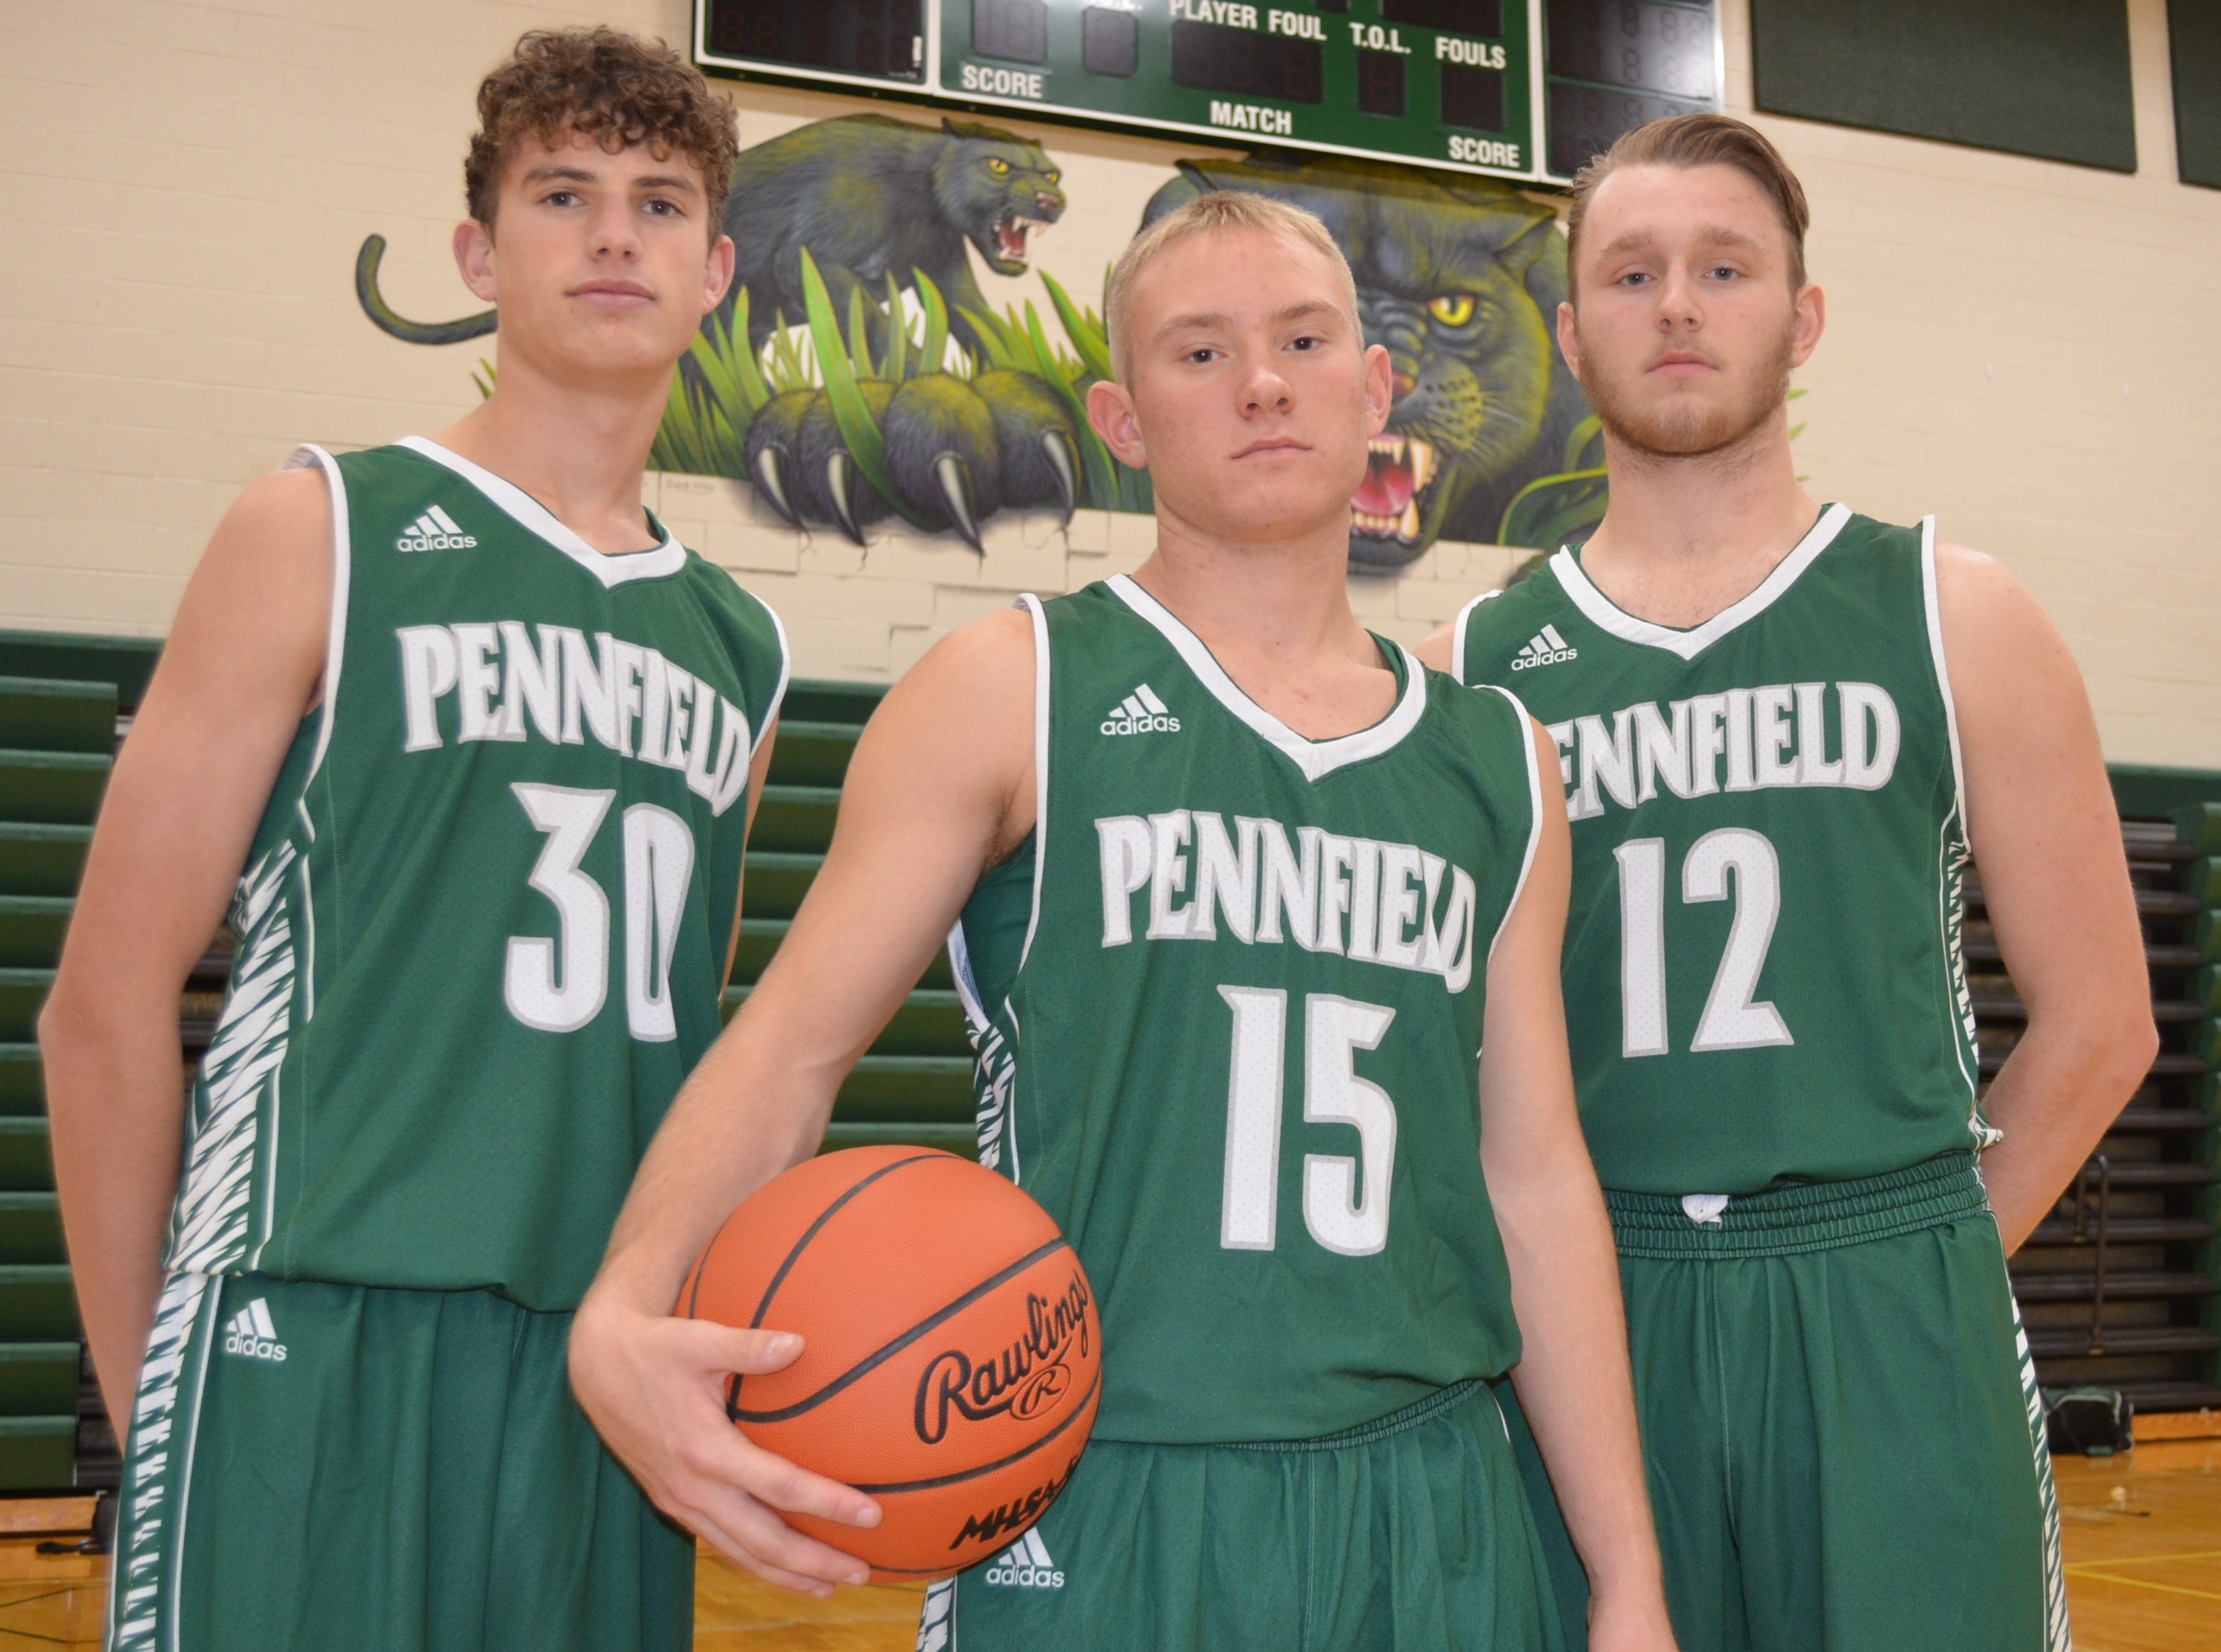 The returner leaders for the 2018-19 Pennfield boys basketball team include, from left, Kyle Liggett, Keagan Burns and Ryan Vought.